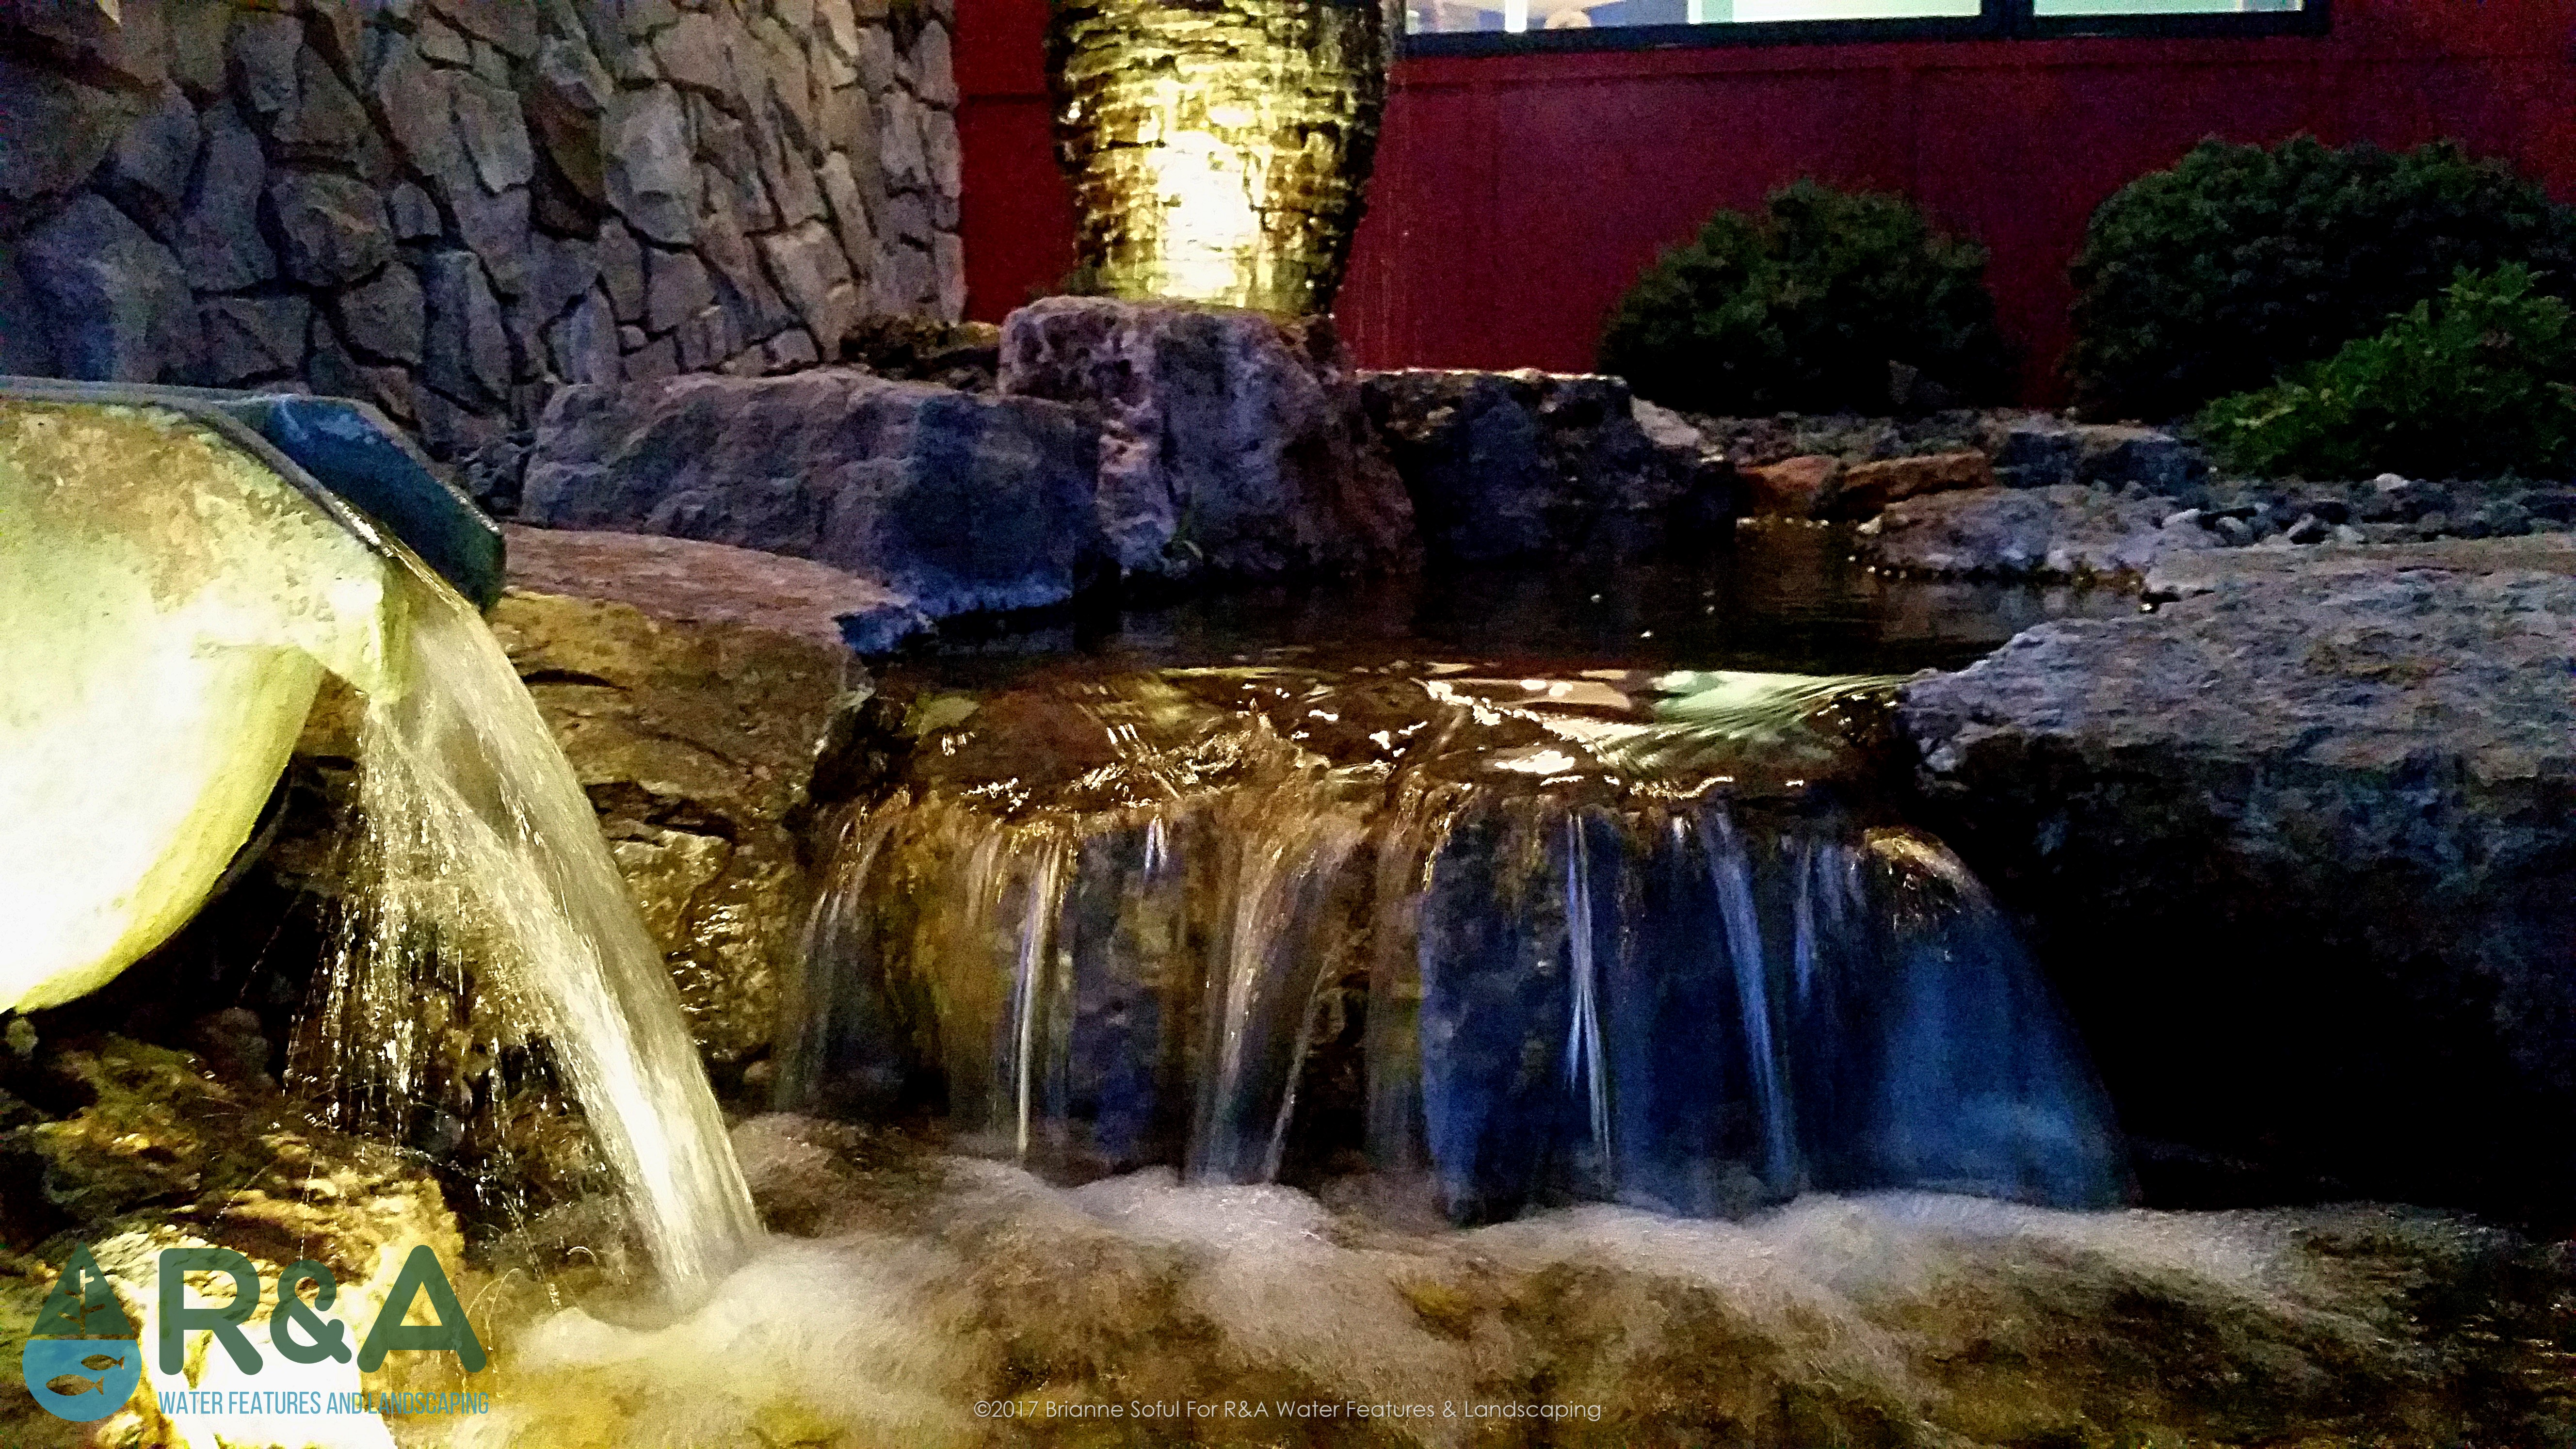 Waterfall for aeration and cleaning